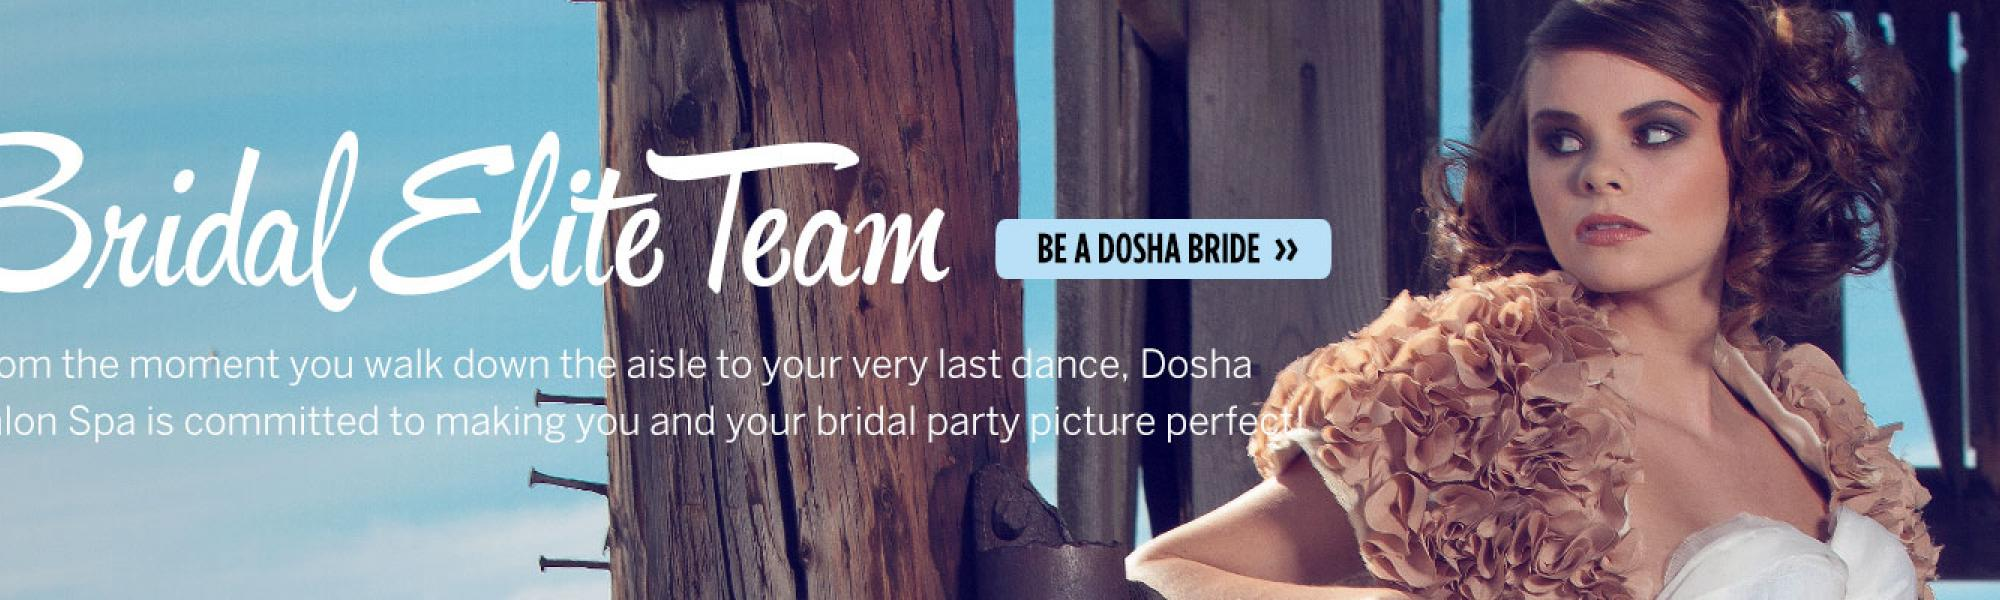 Bridal Elite Team - Dosha Salon Spa - Be a Dosha Bride